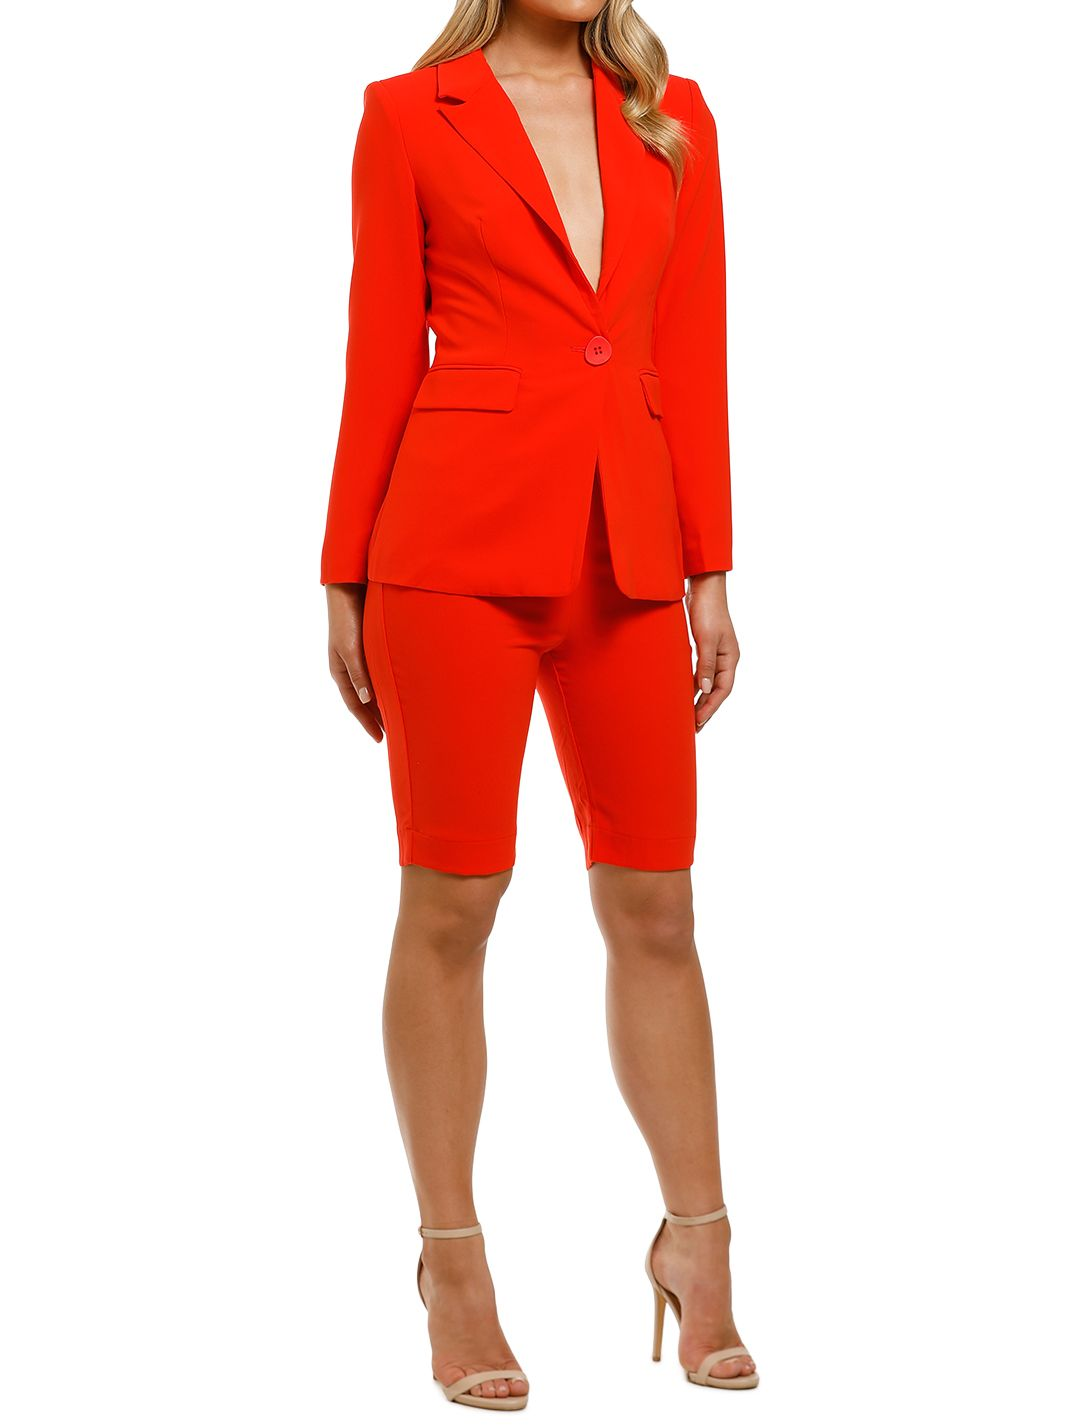 Ministry-of-Style-Magnolia-Blazer-and-Shorts-Set-Coral-Side